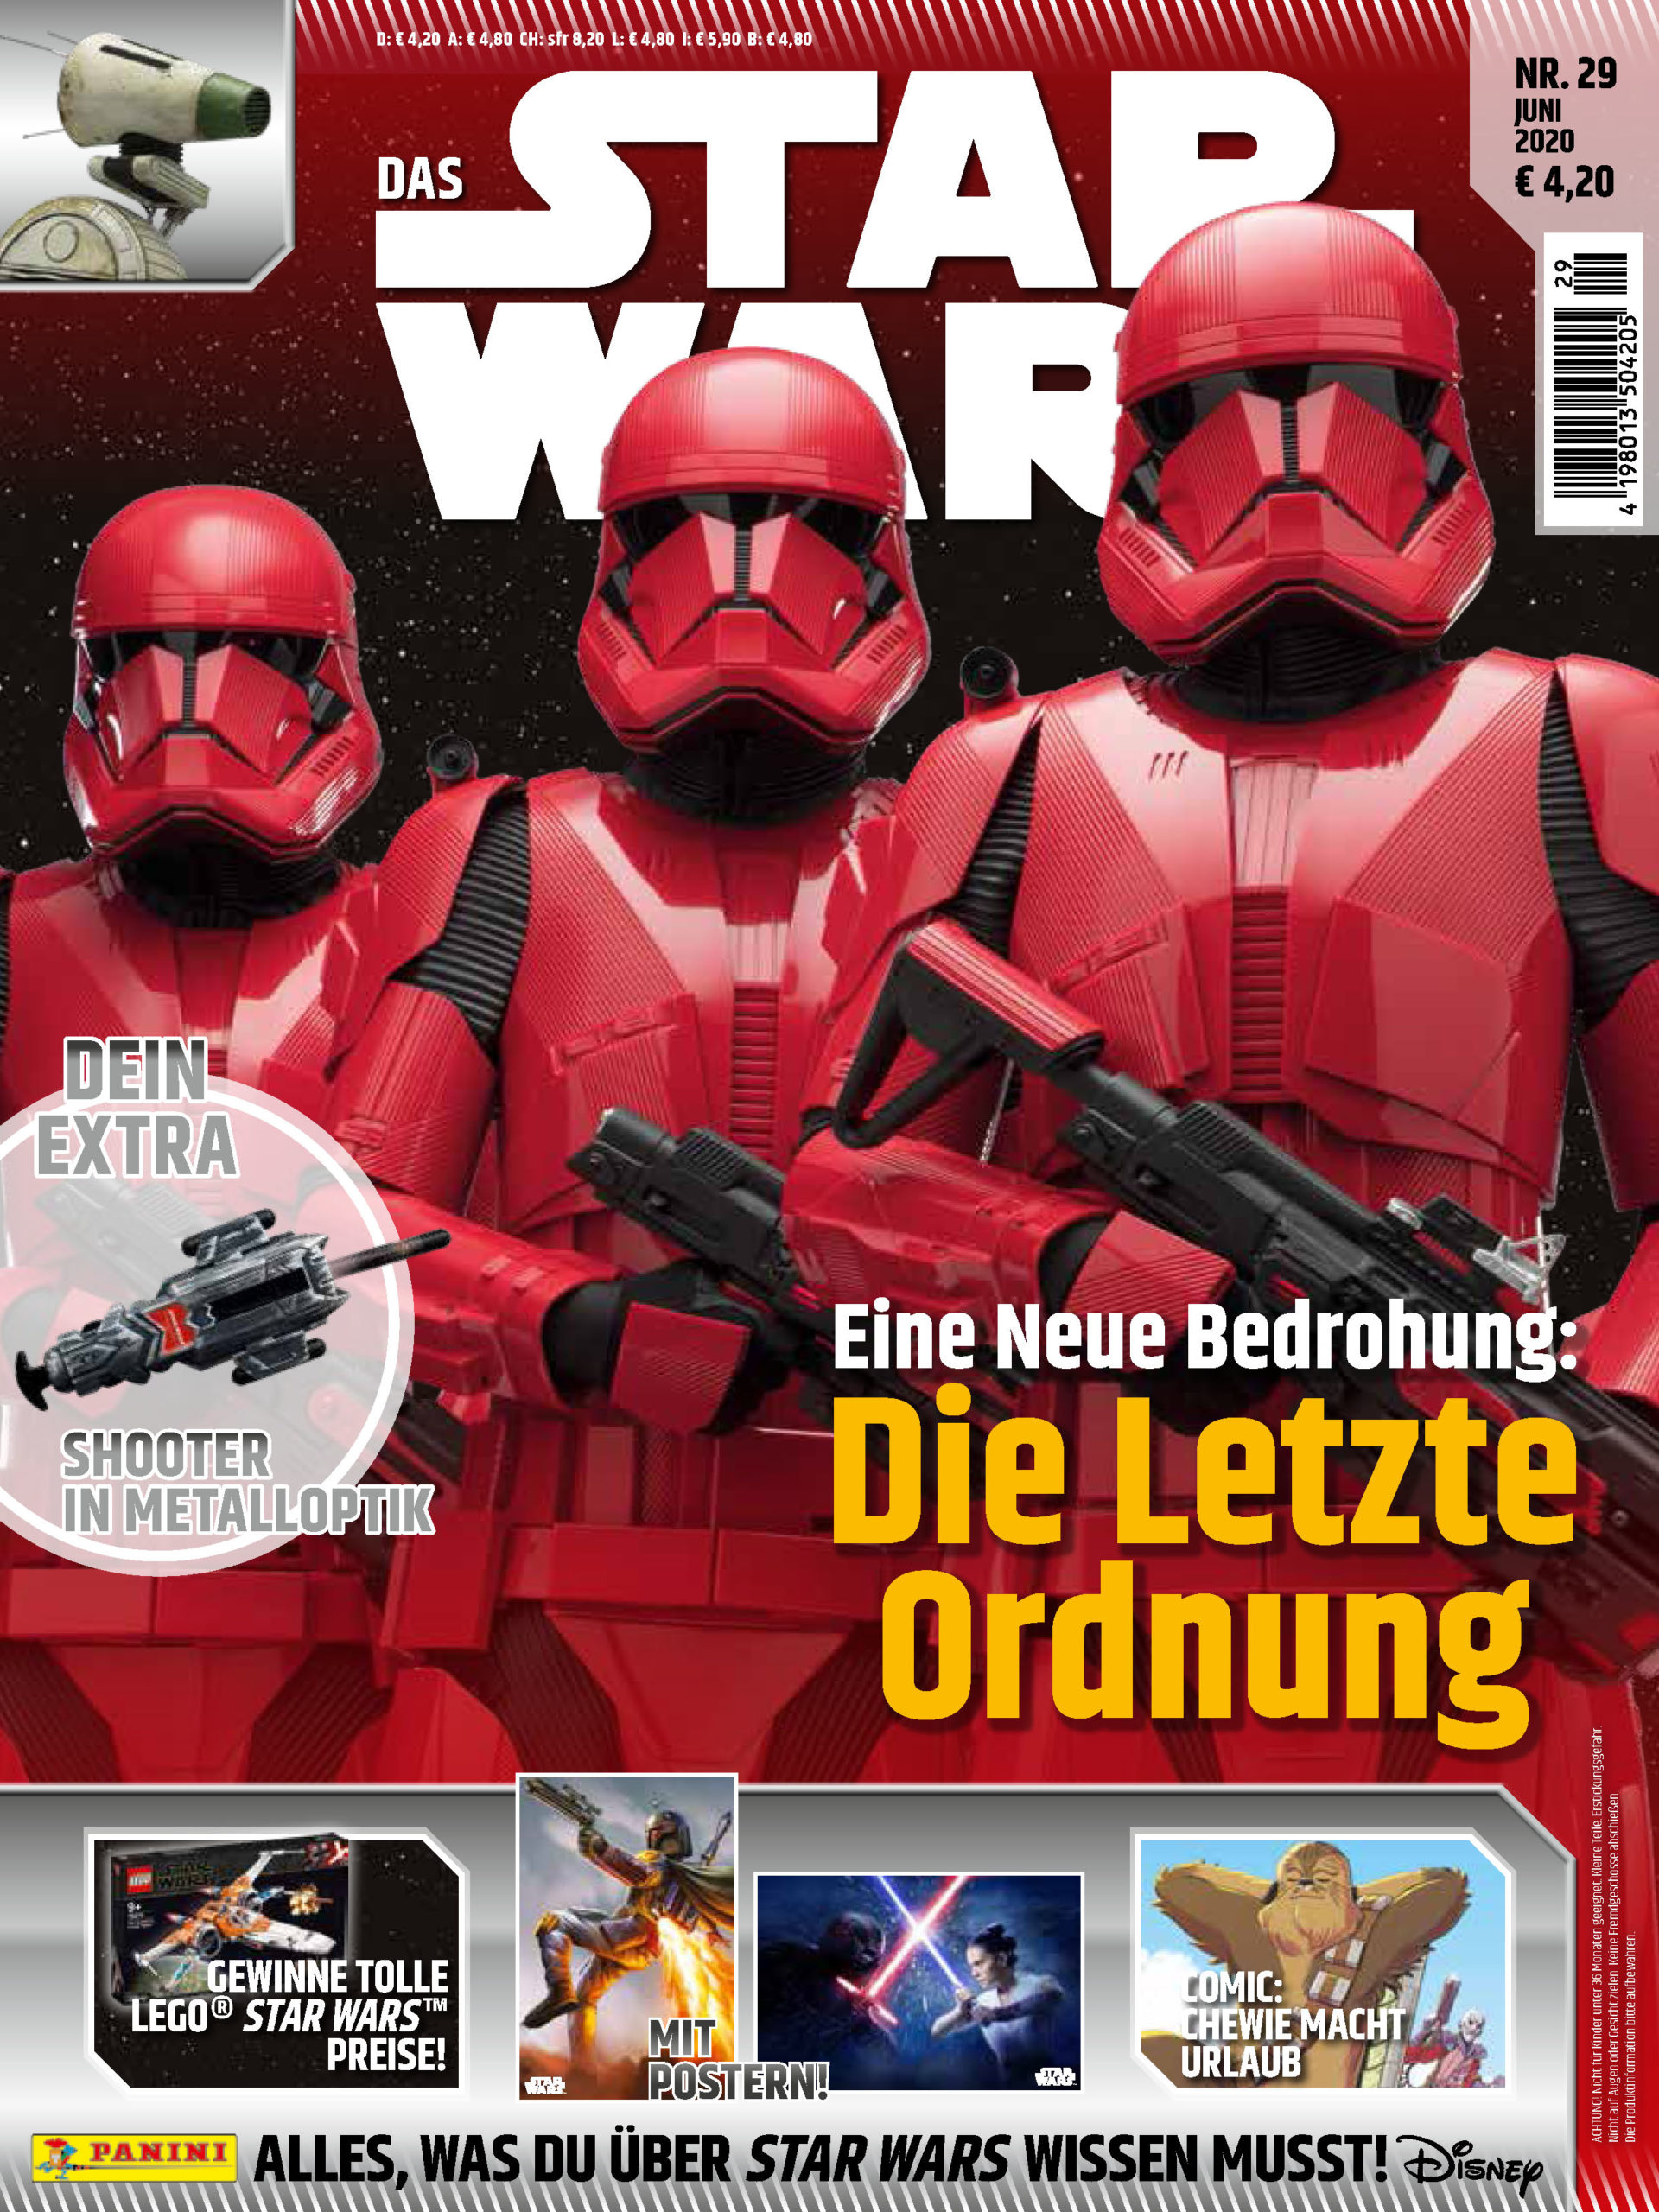 Star Wars Universum #29 (17.06.2020)